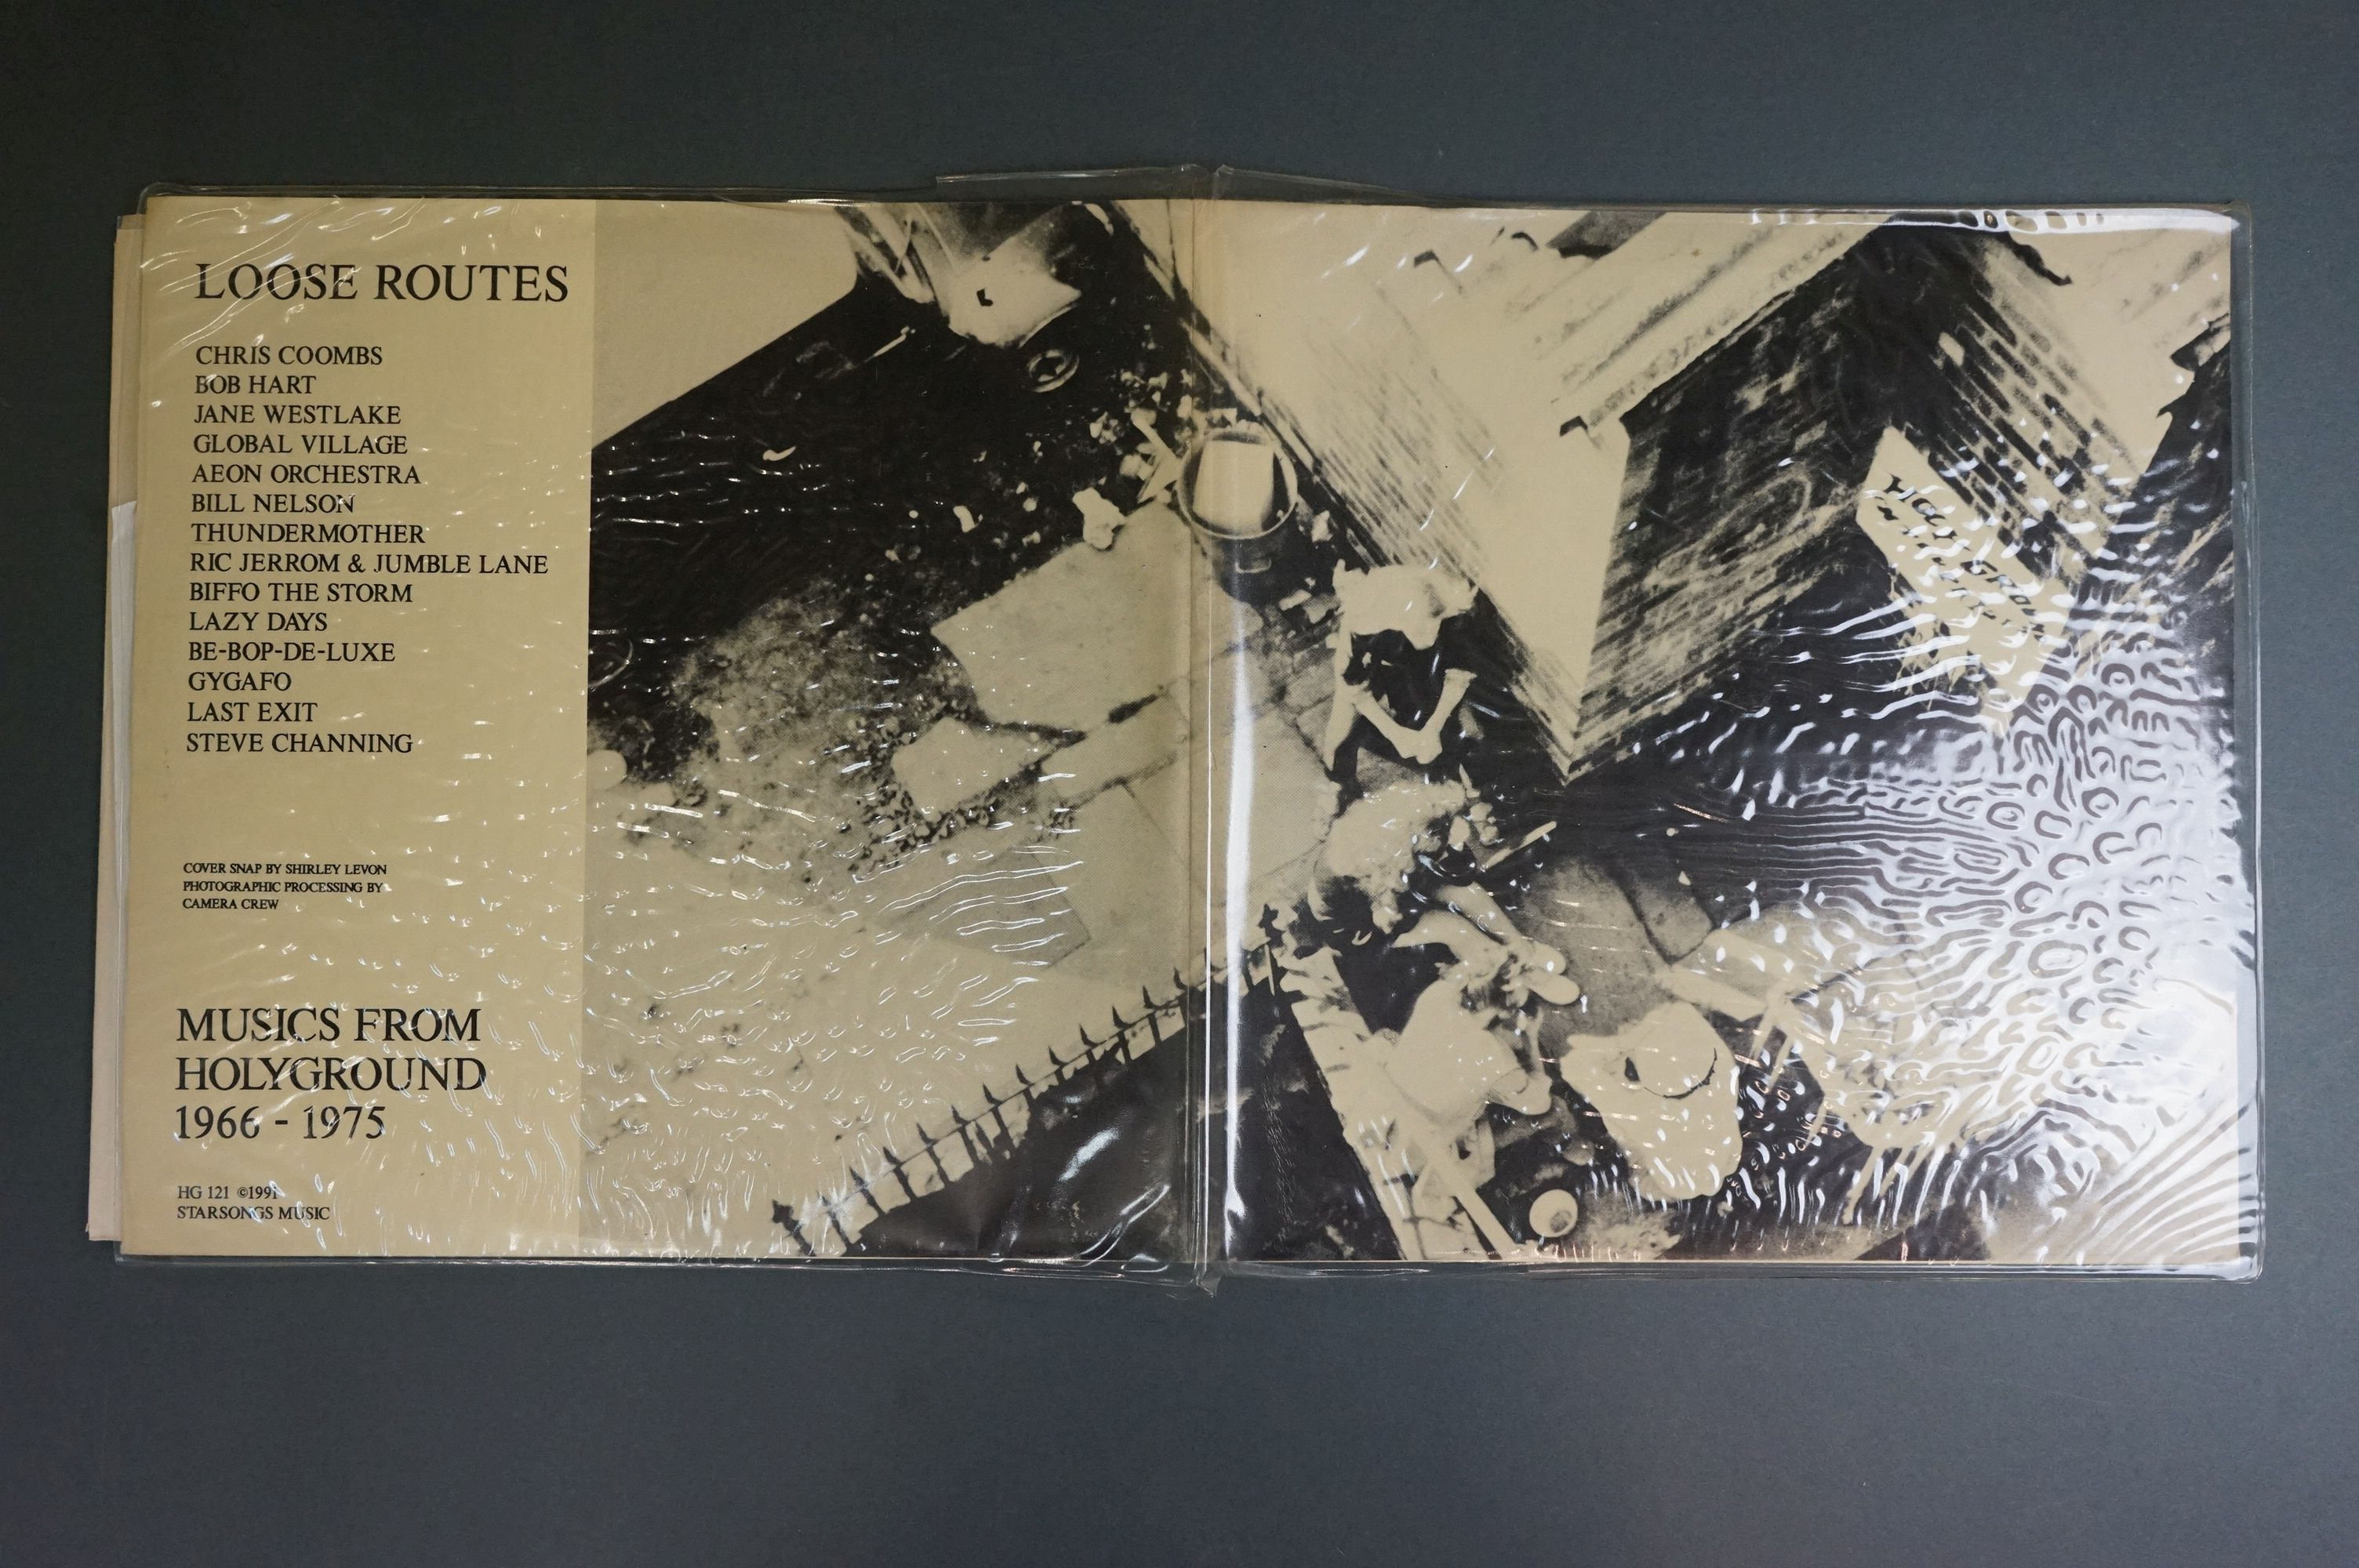 Vinyl - Compilation Loose Routers Music From Holyground 1966-1975 MG121 Double Album, 1991 - Image 6 of 6